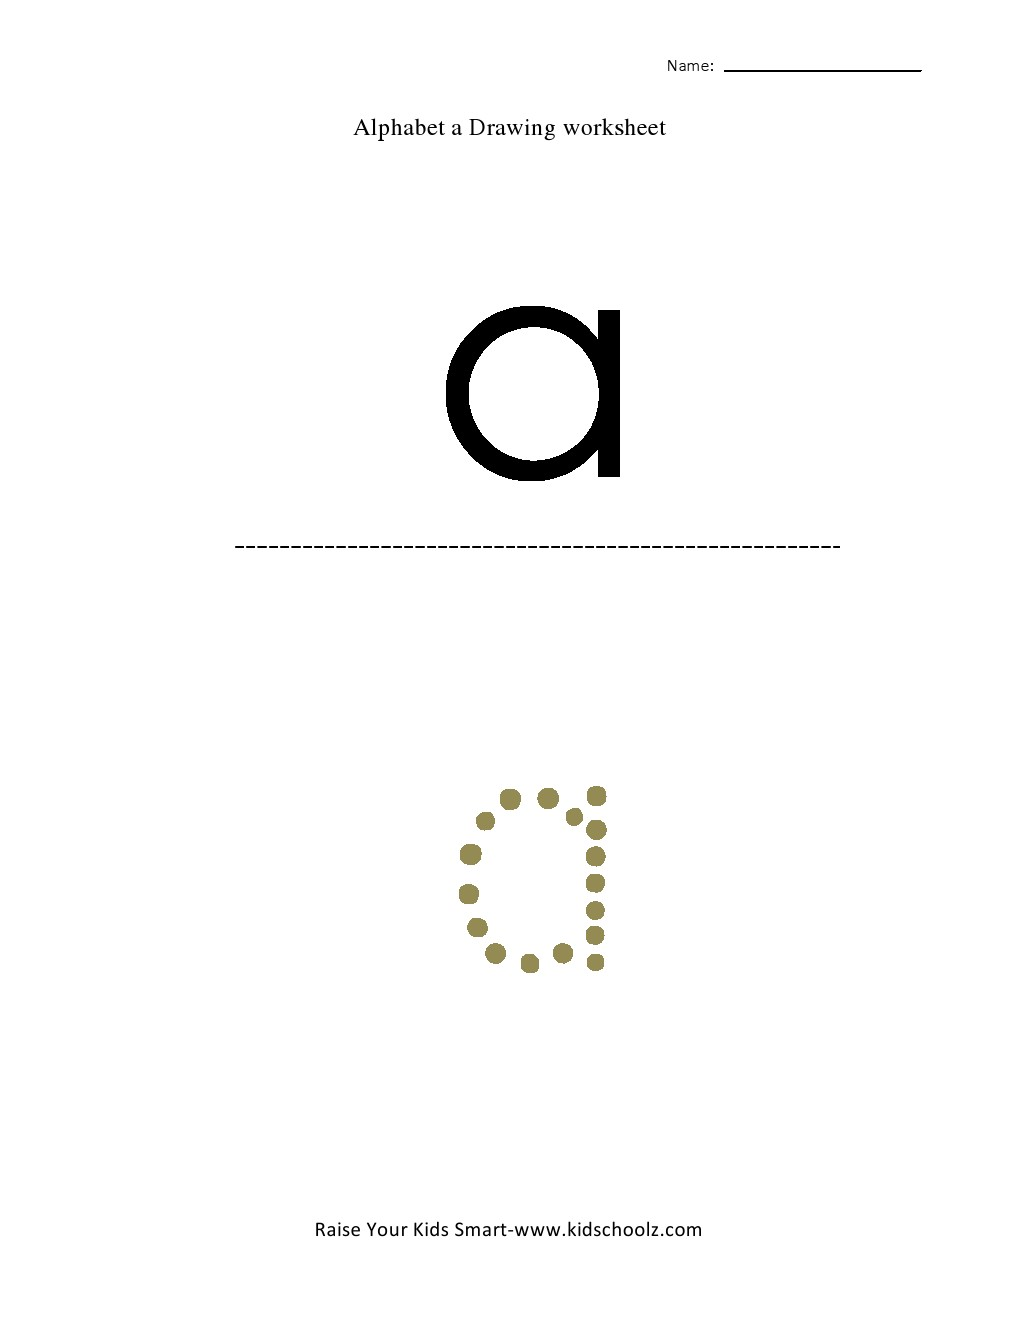 Tracing Small Letter Alphabets - a - Kidschoolz